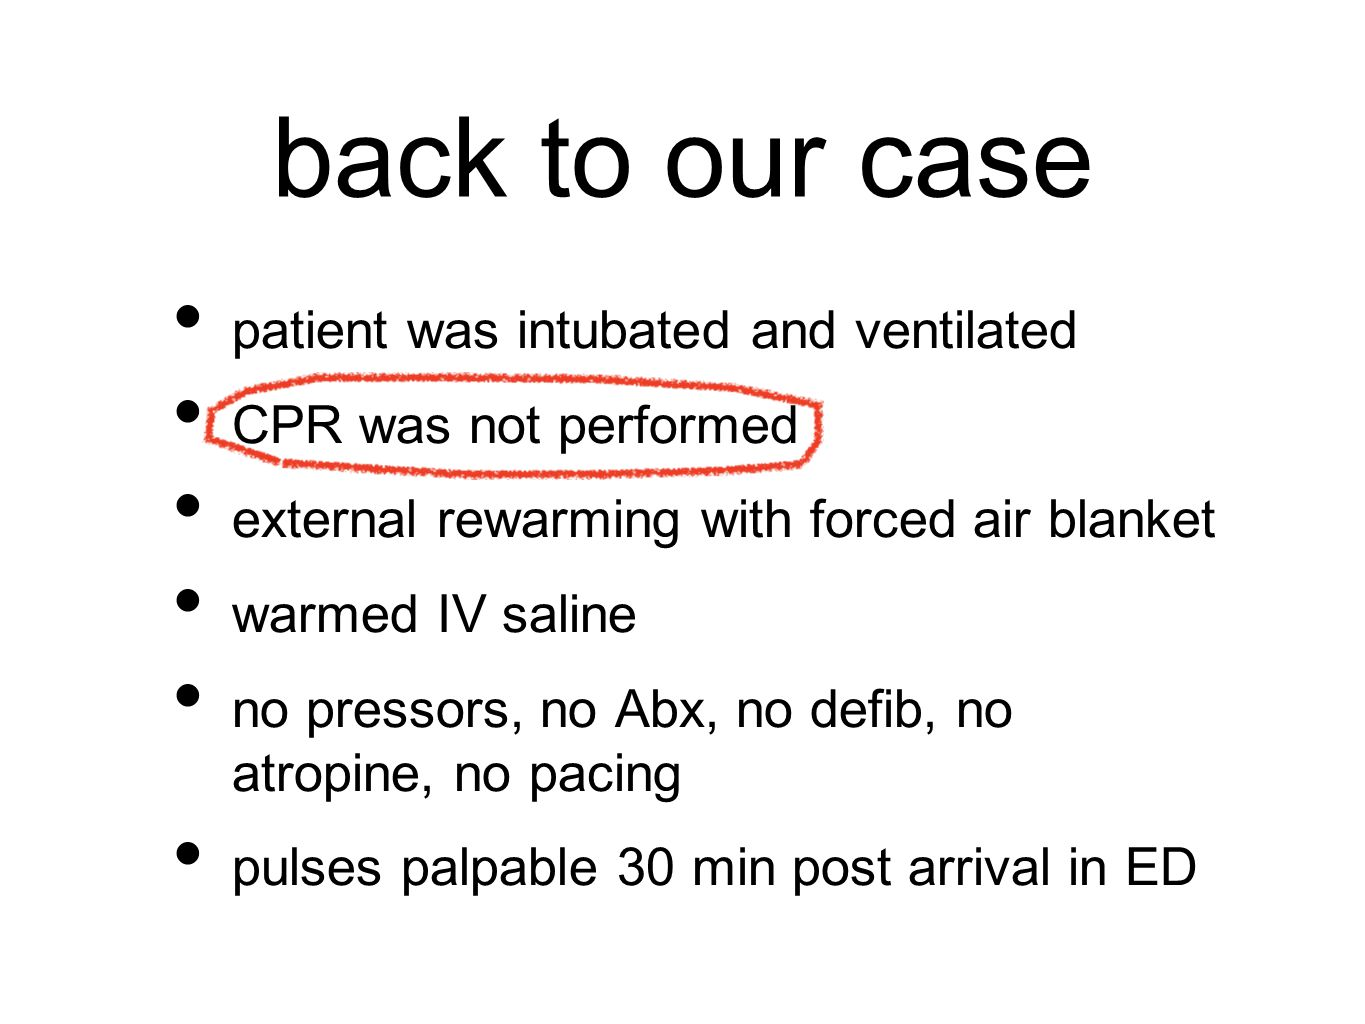 back to our case patient was intubated and ventilated CPR was not performed external rewarming with forced air blanket warmed IV saline no pressors, no Abx, no defib, no atropine, no pacing pulses palpable 30 min post arrival in ED